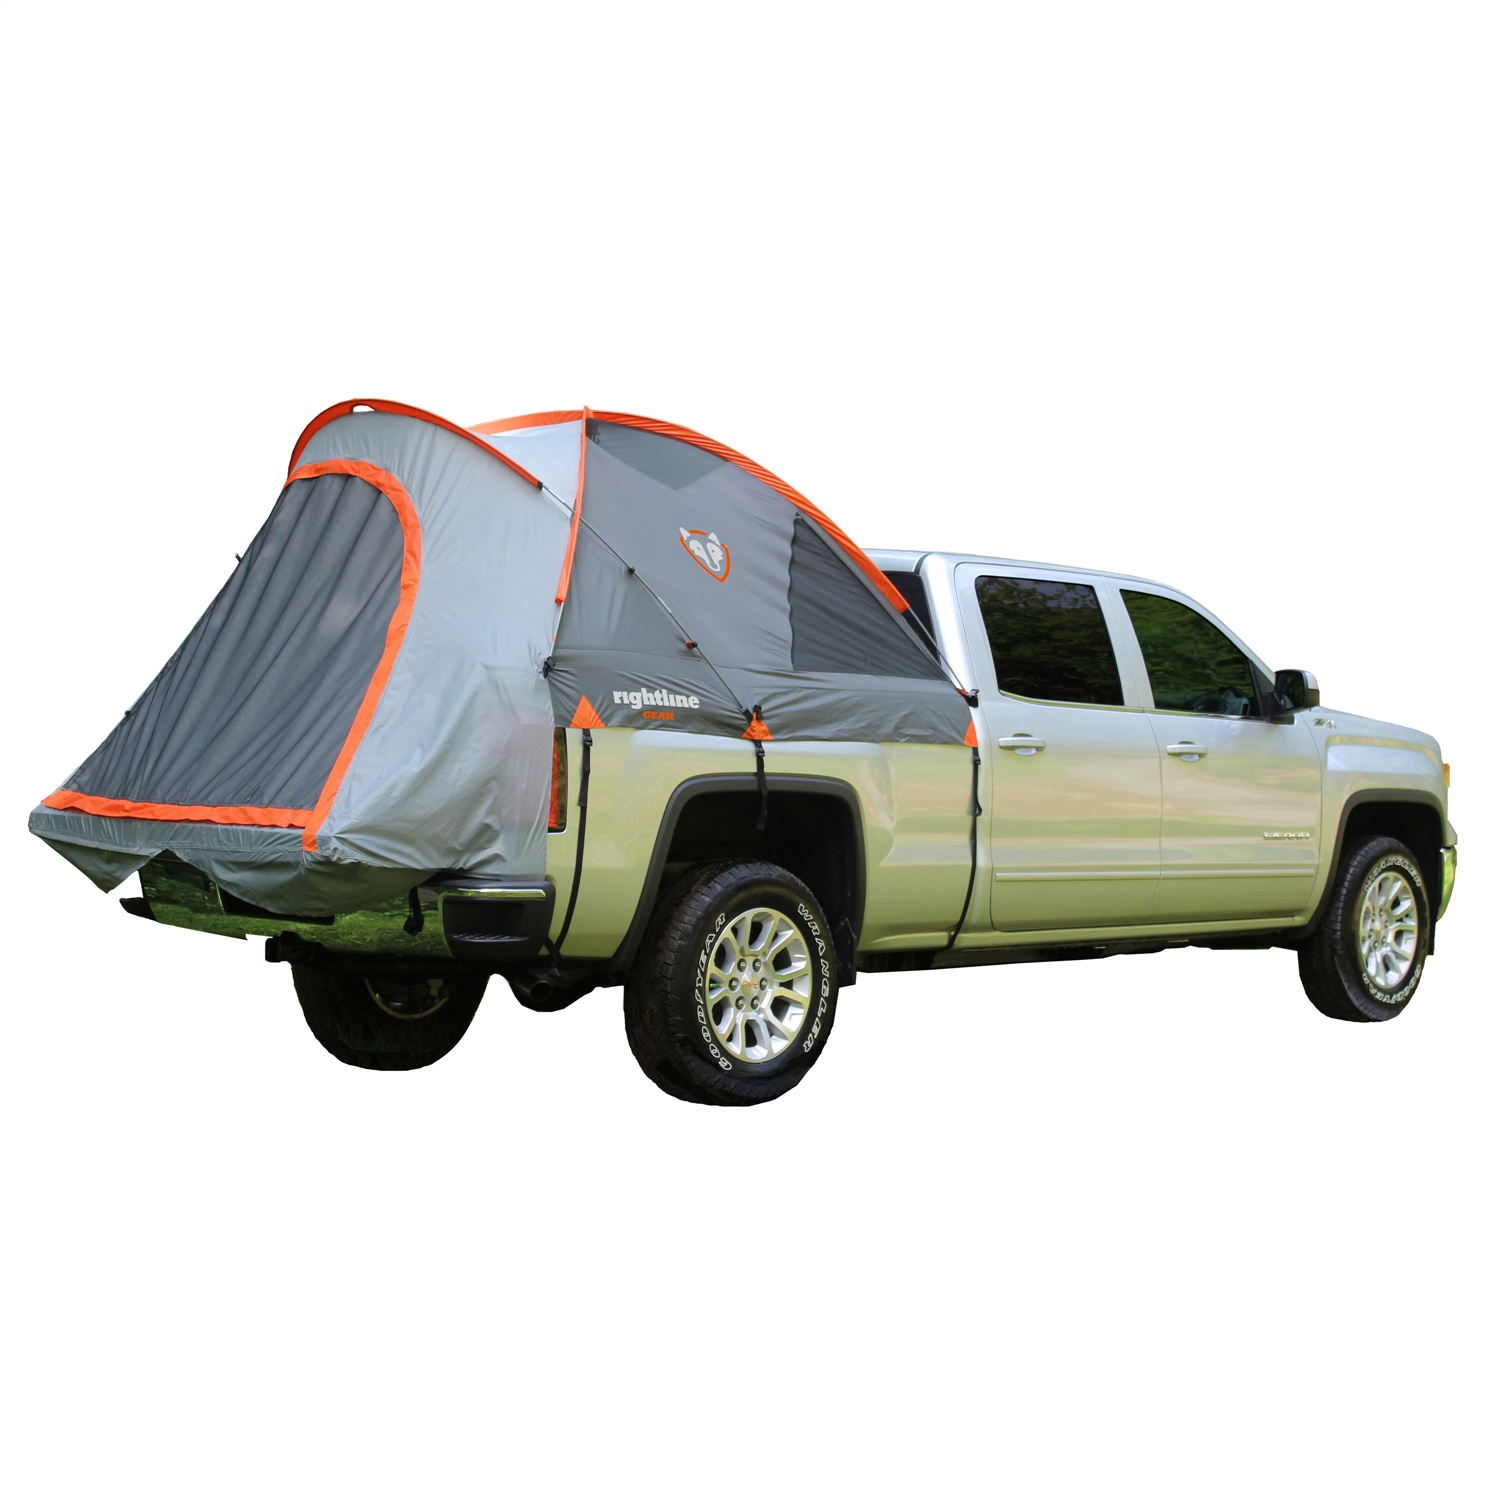 Rightline Gear 110766 Truck Bed Tent Fits 15-20 Canyon Colorado Gladiator Ranger